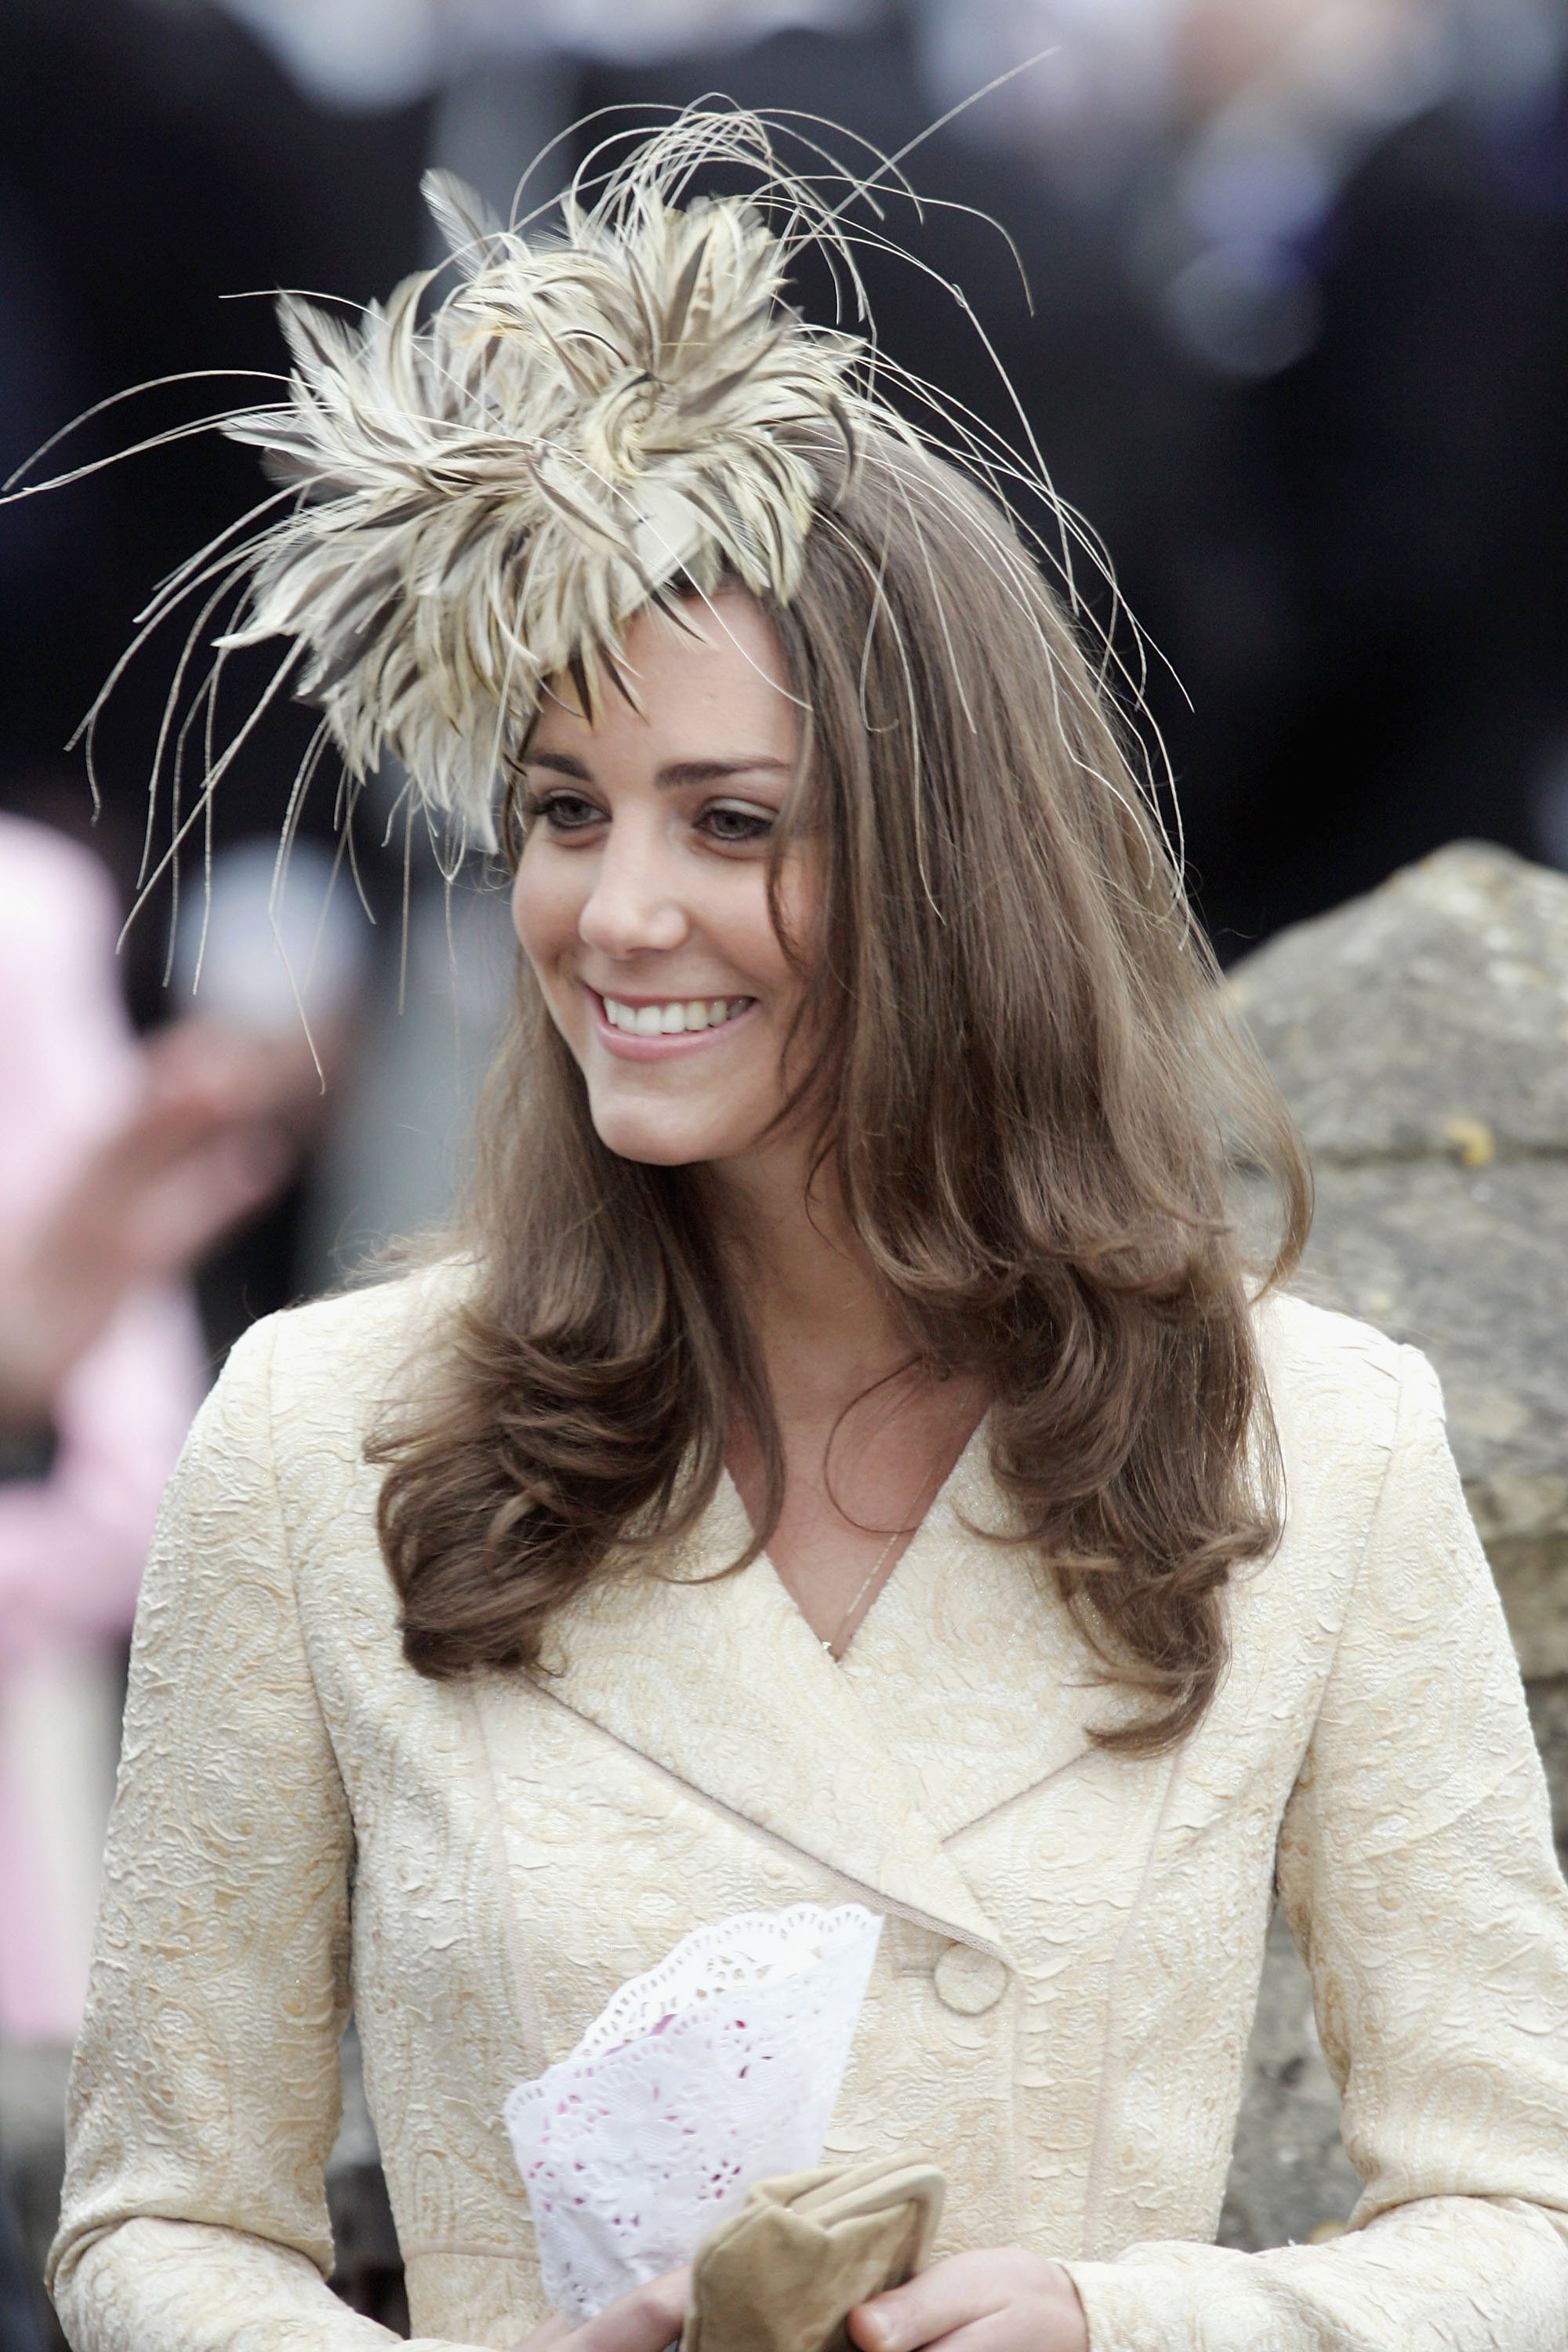 Kate Middleton, girlfriend of Prince Willliam, attends as wedding guest at the marriage of Laura Parker-Bowles and Harry Lopes at St Cyriac's Church, Lacock, on May 6, 2006 | Photo: GettyImages